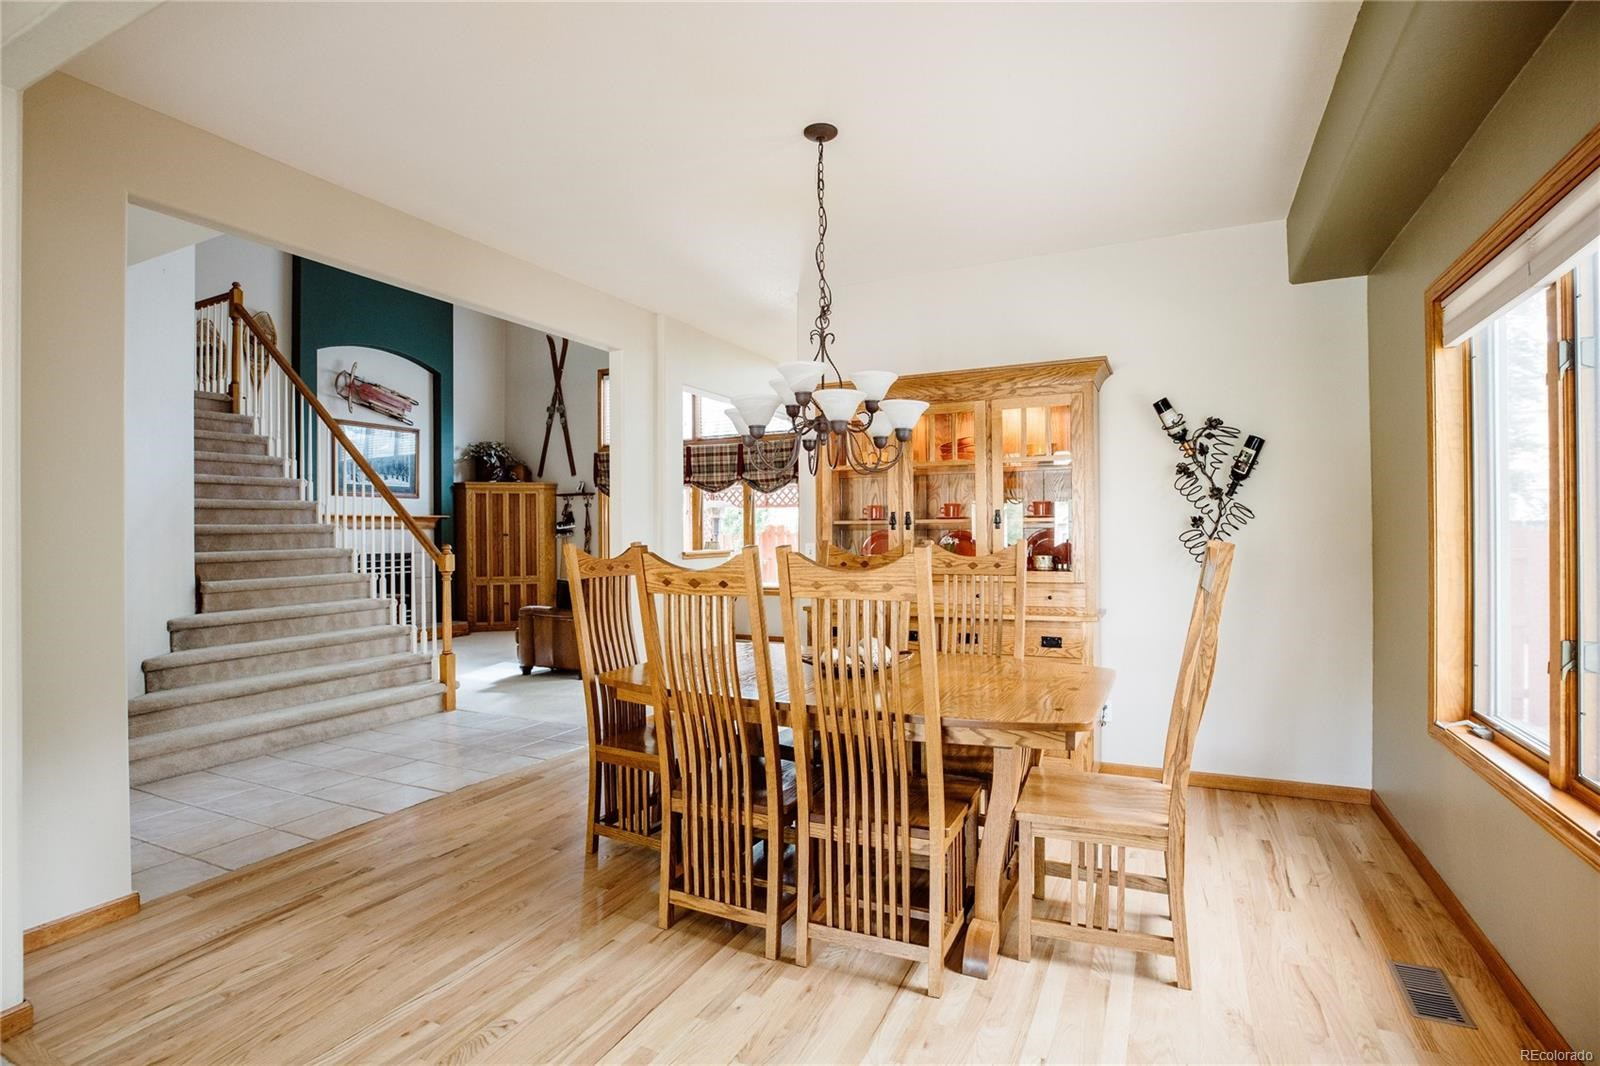 MLS# 4033949 - 5 - 3713 Ashmount Drive, Fort Collins, CO 80525